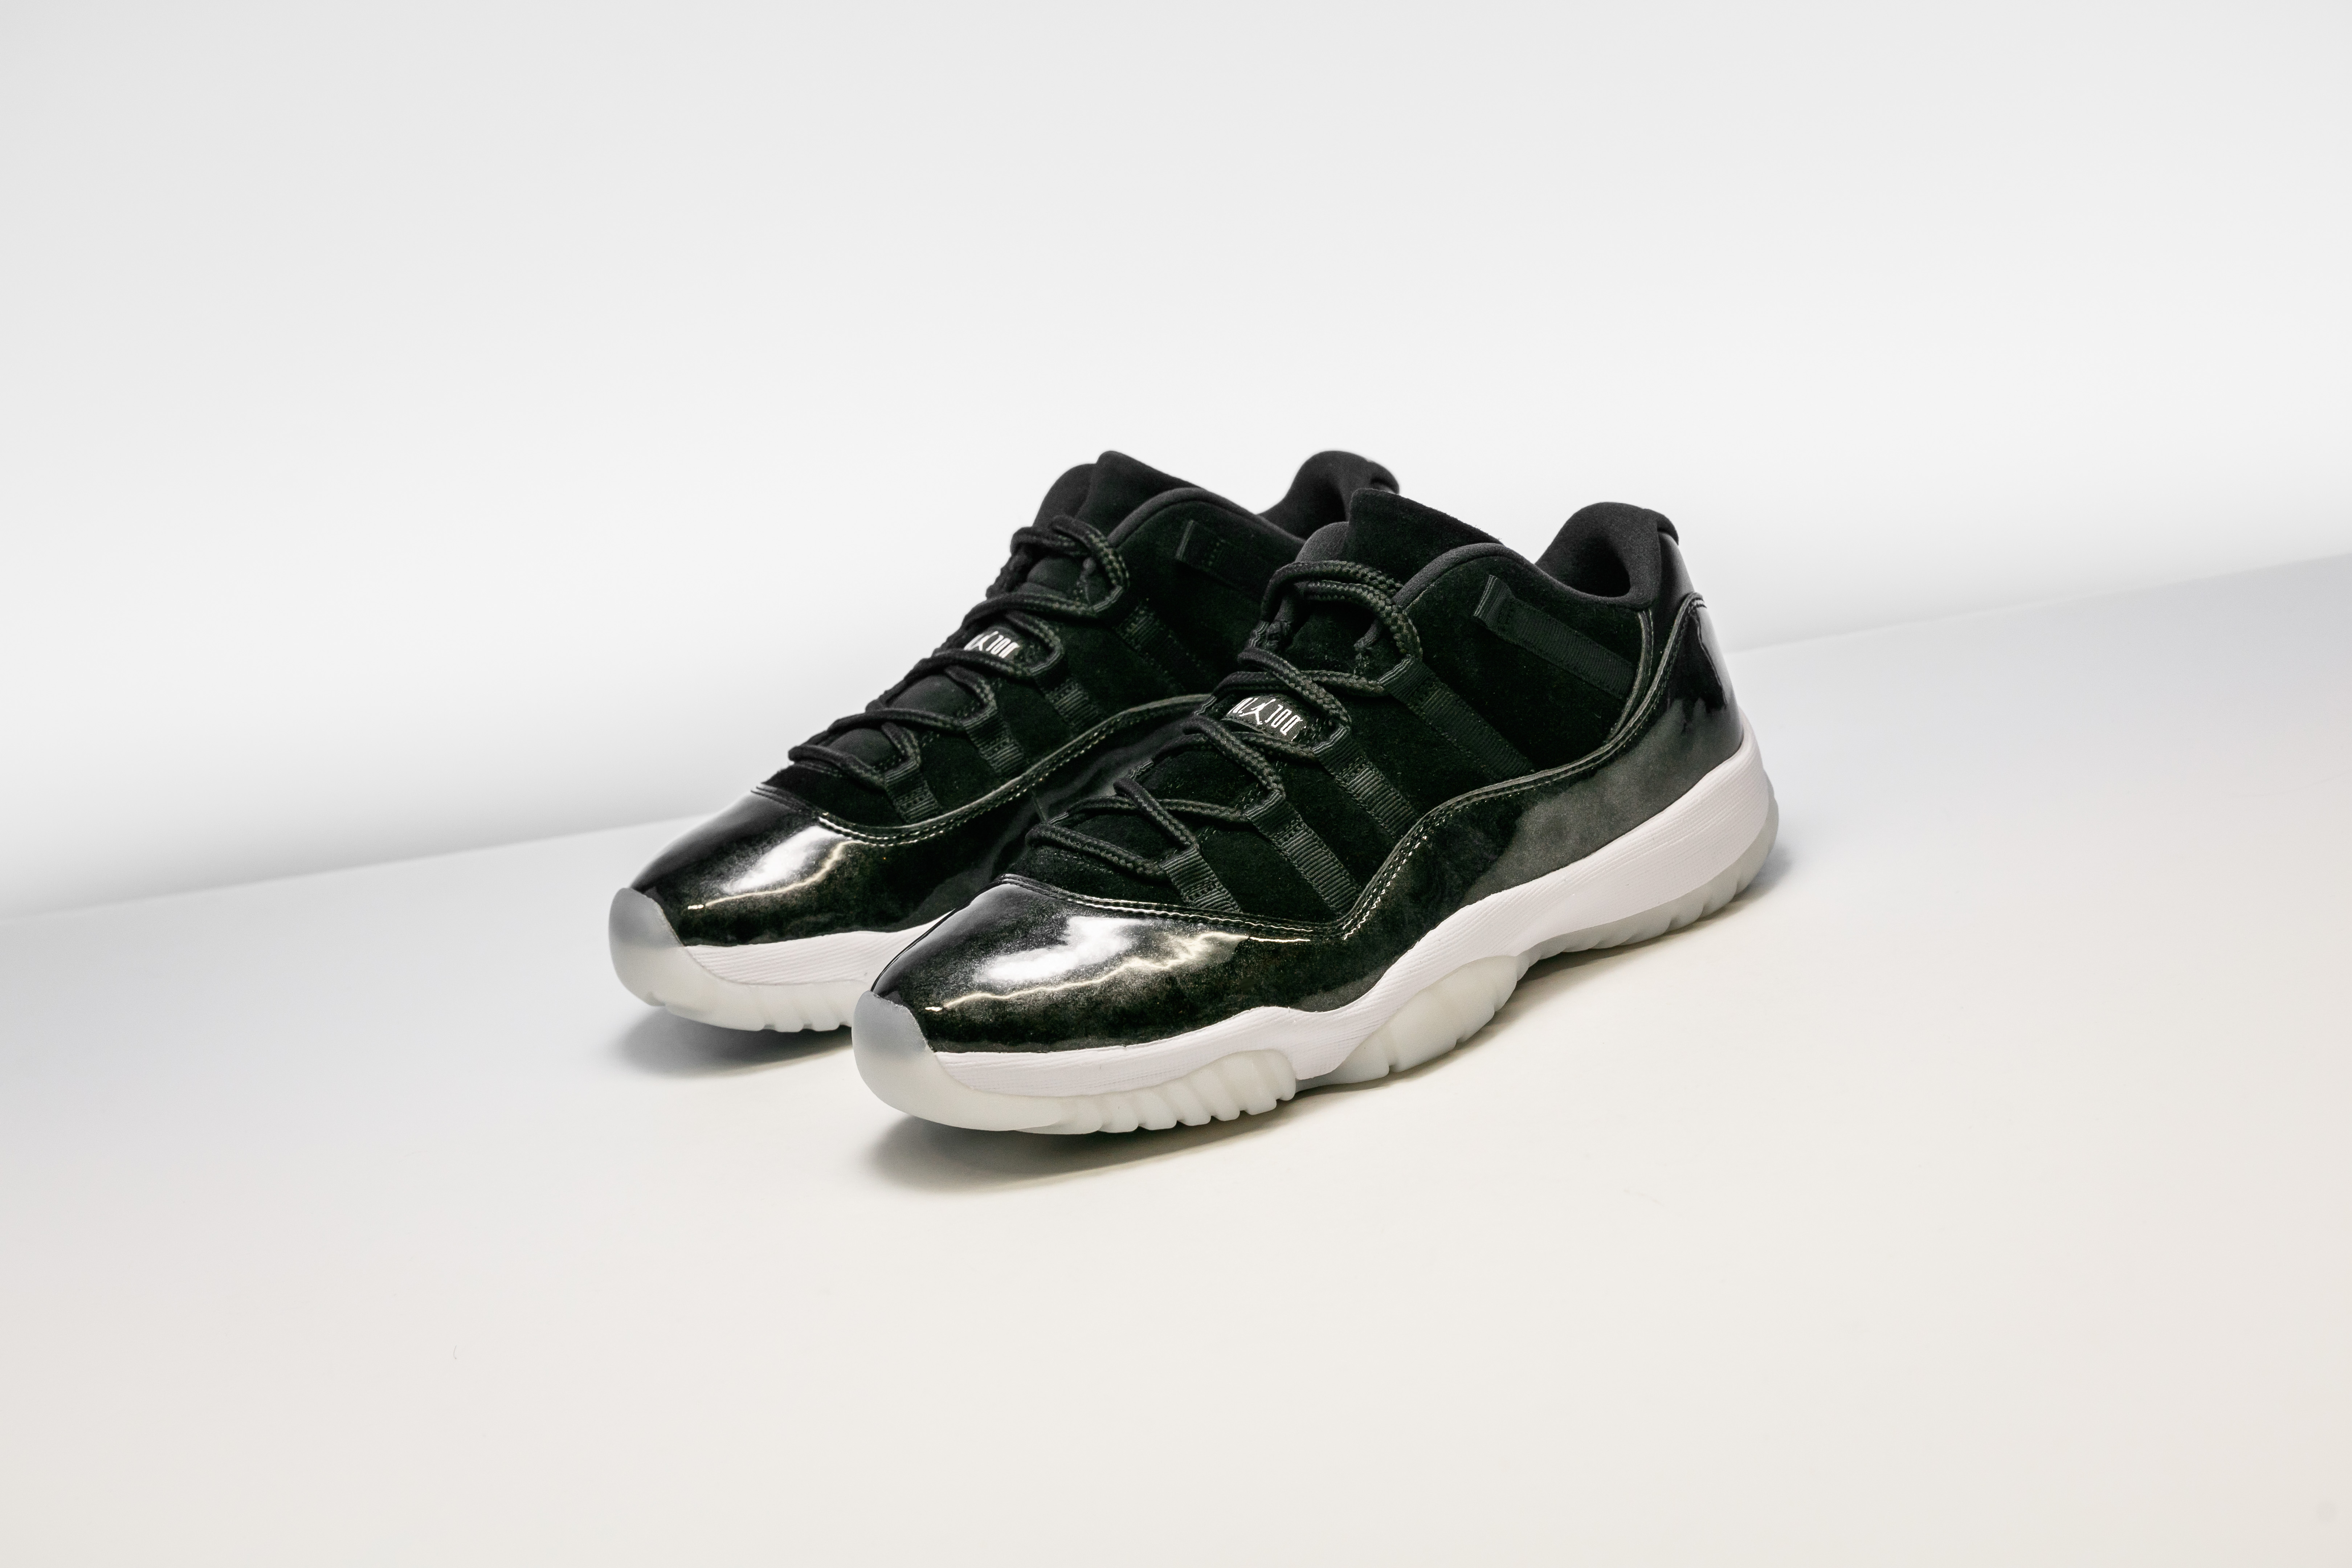 """5de0c2773ca36f Forget release day this Saturday. Stadium Goods is making today the  unofficial release day for Air Jordan 11 Low """"Barons."""" Shop your size now –  for retail!"""